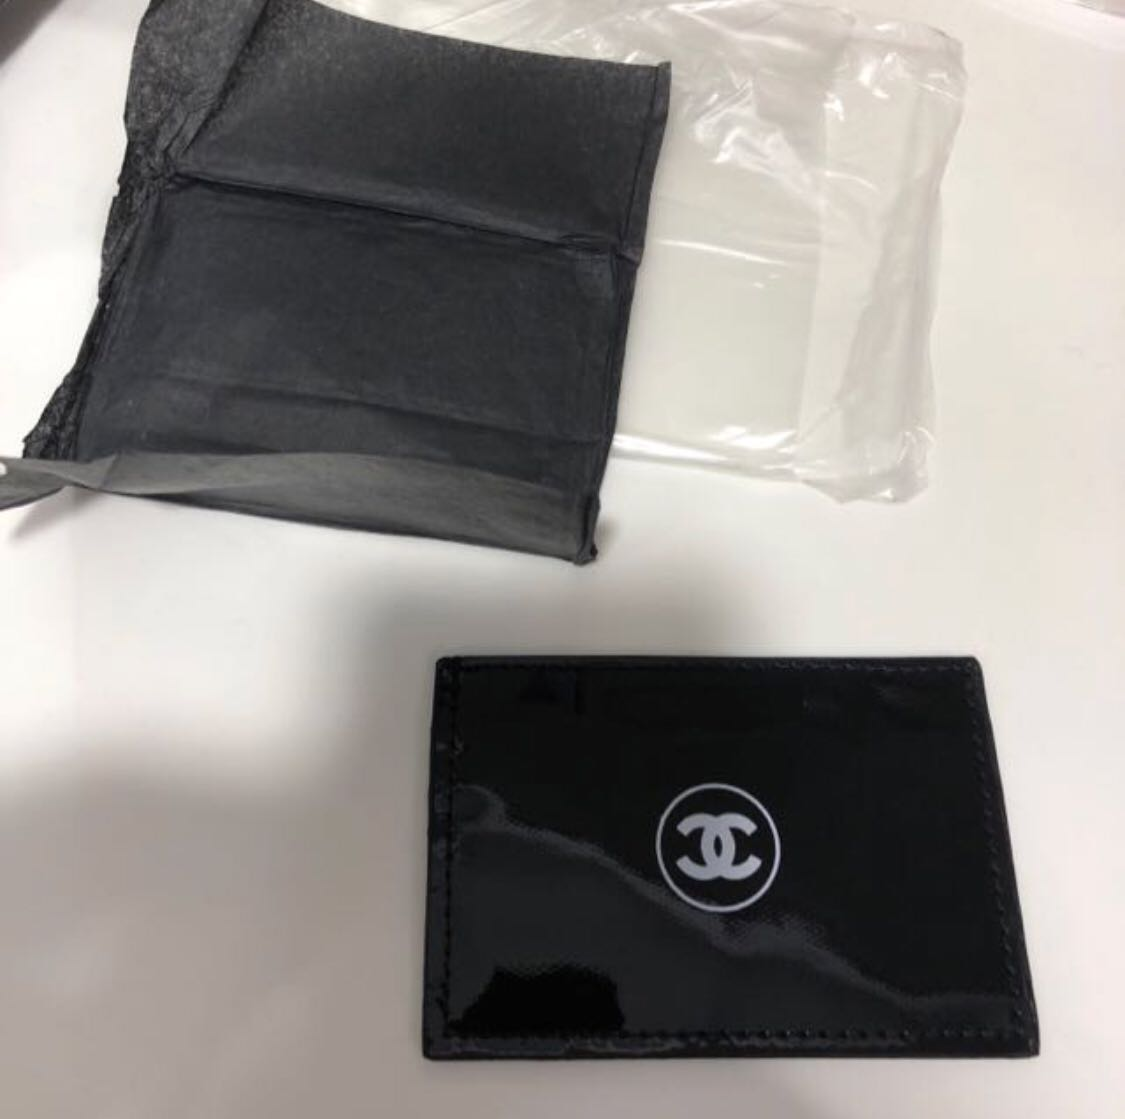 f52585d754175c GWP Chanel Basic Card Holder, Women's Fashion, Bags & Wallets on Carousell